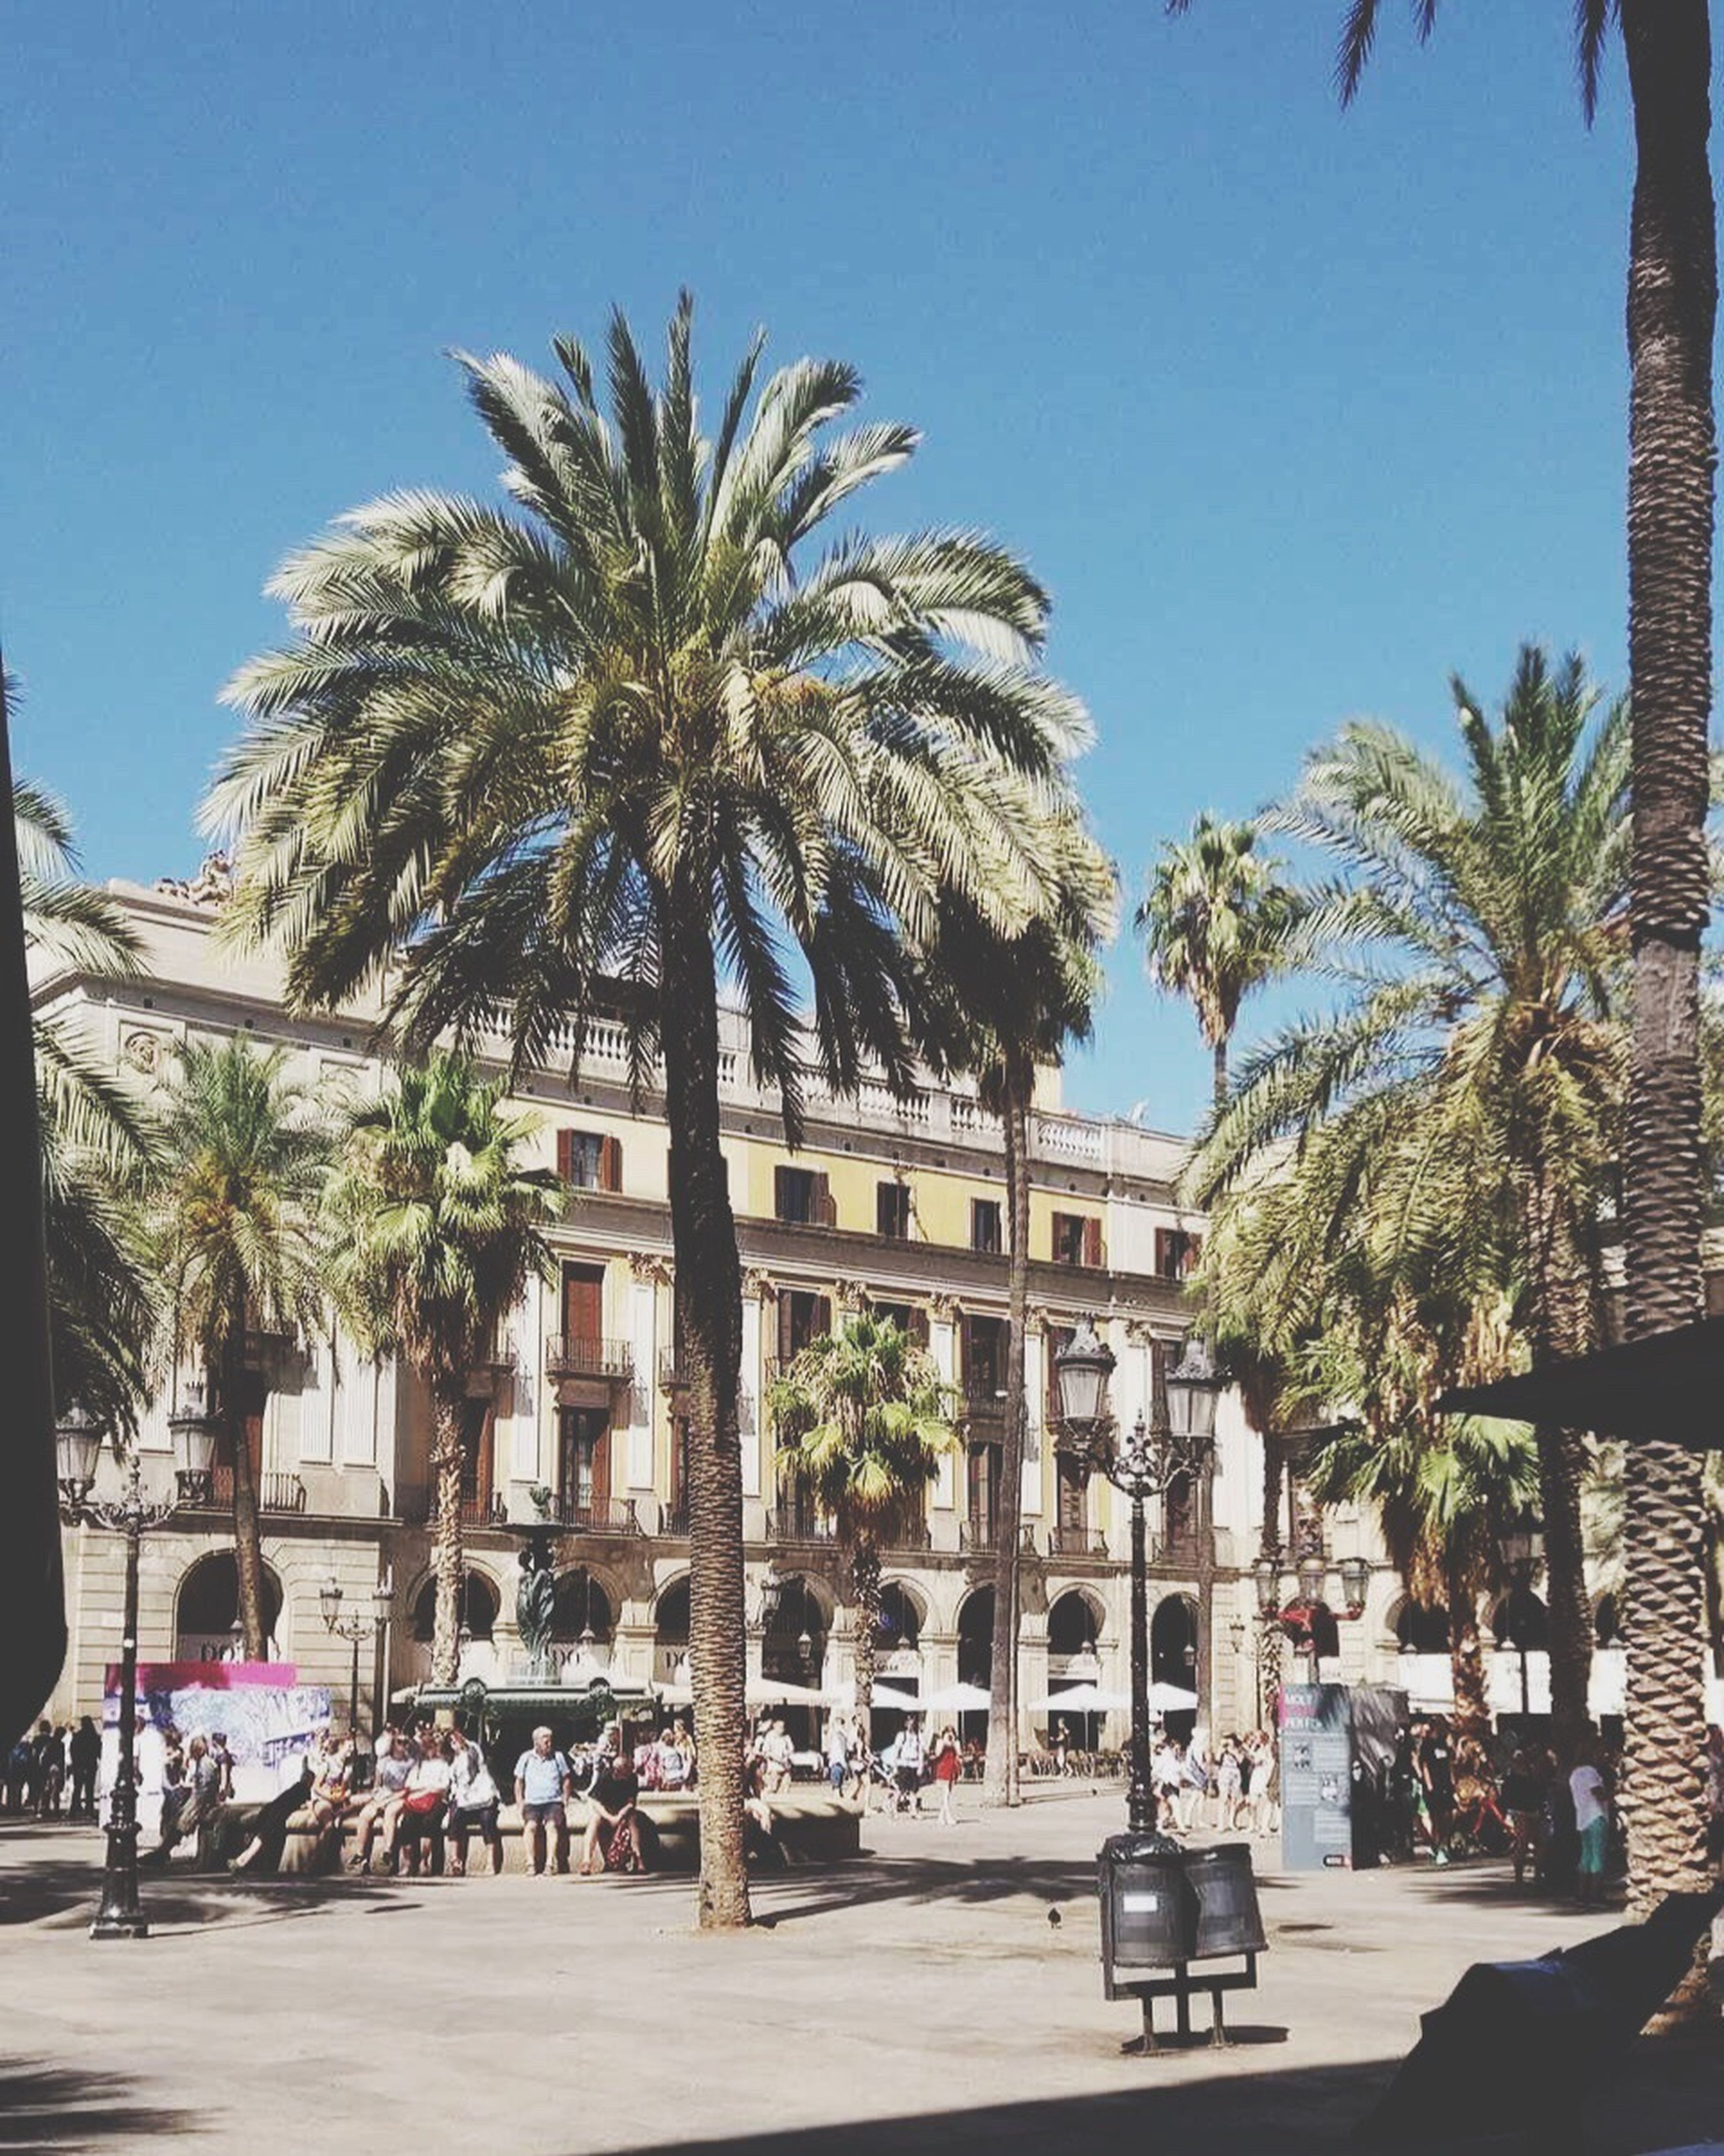 palm tree, tree, architecture, sunlight, building exterior, clear sky, street, day, built structure, outdoors, real people, large group of people, city, sky, people